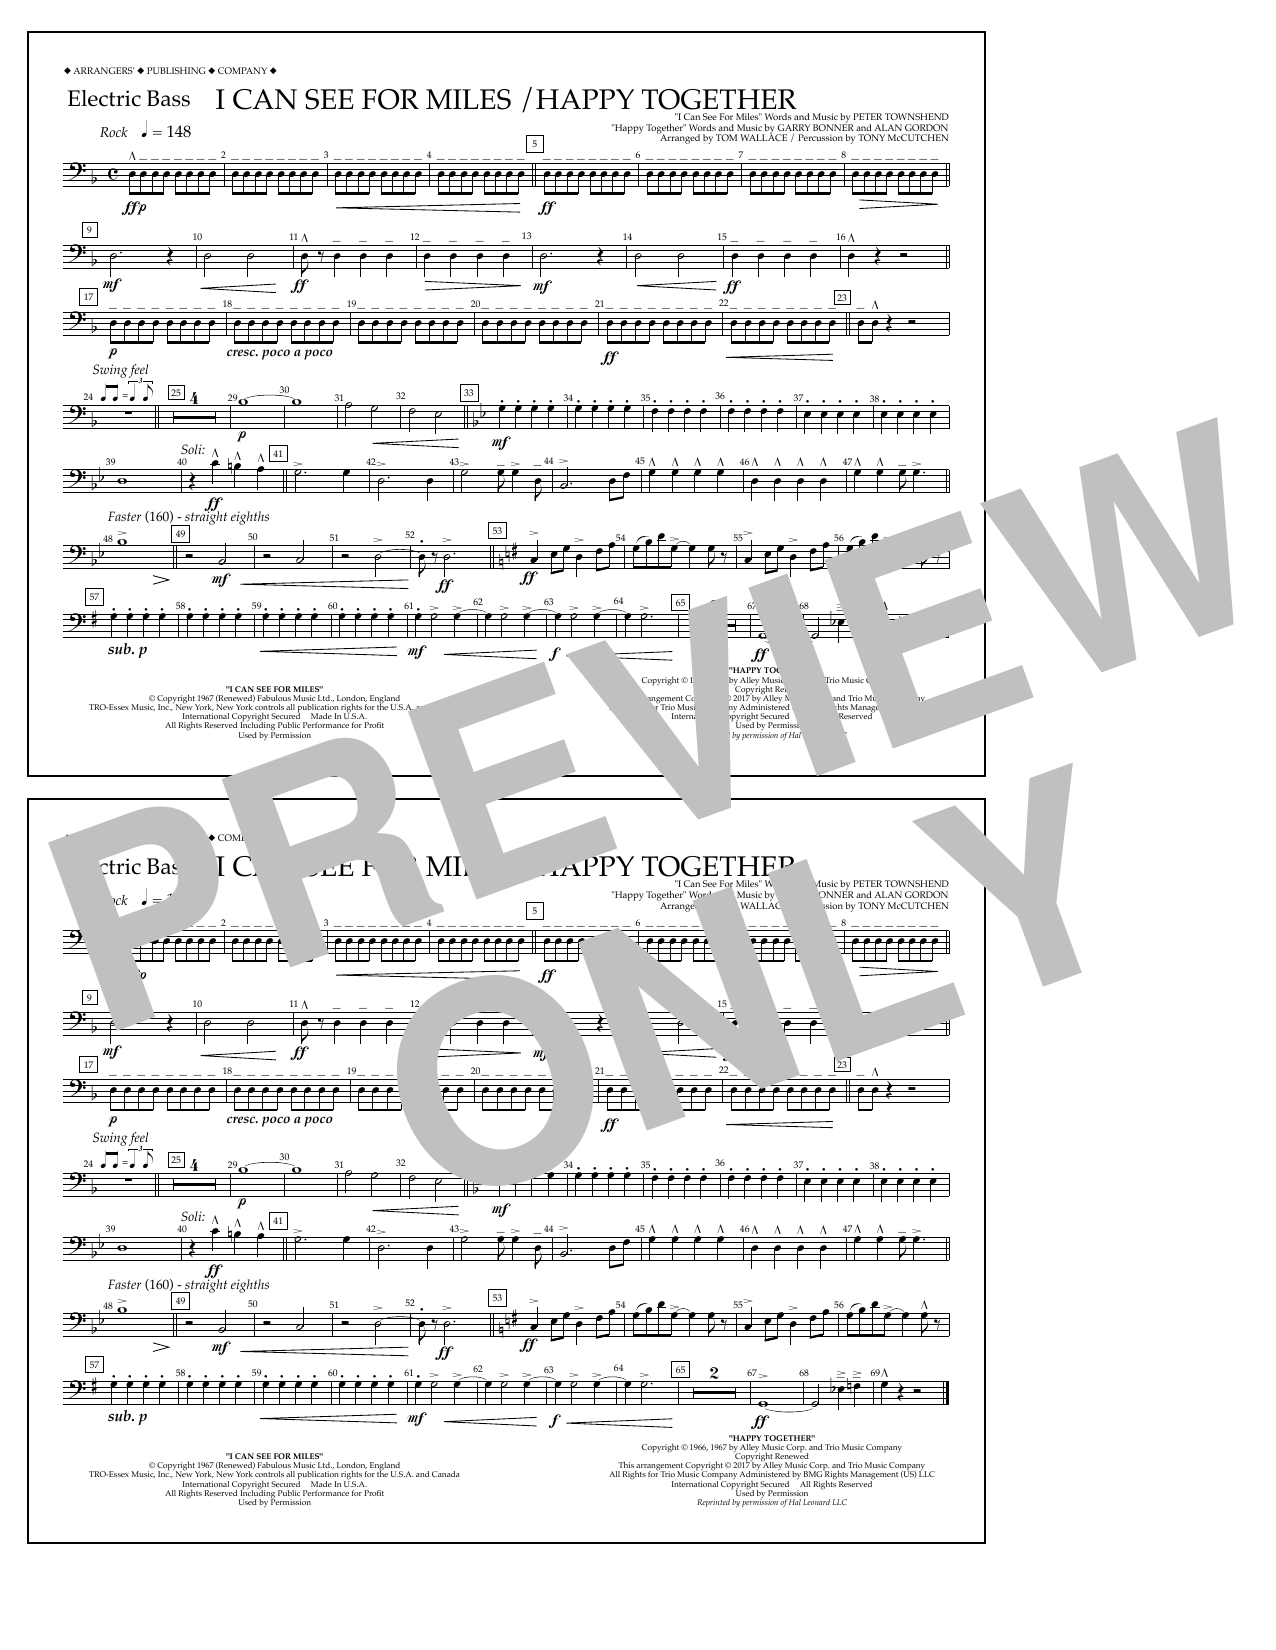 I Can See for Miles/Happy Together - Electric Bass Sheet Music